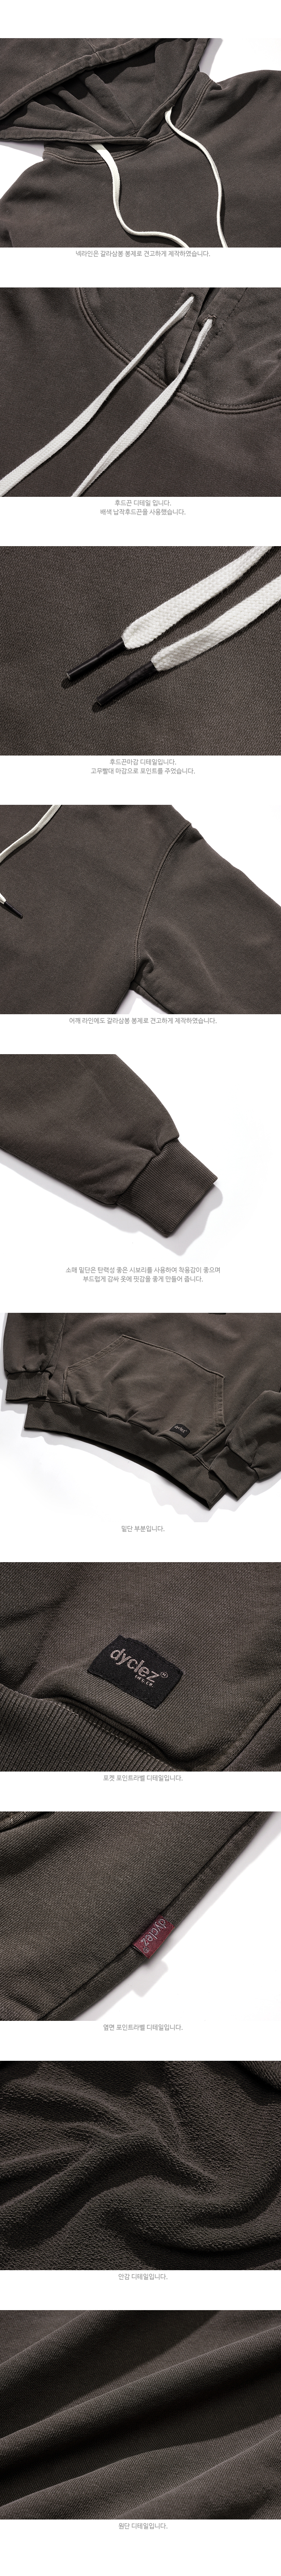 CHHD5075_detail_brown_02.jpg